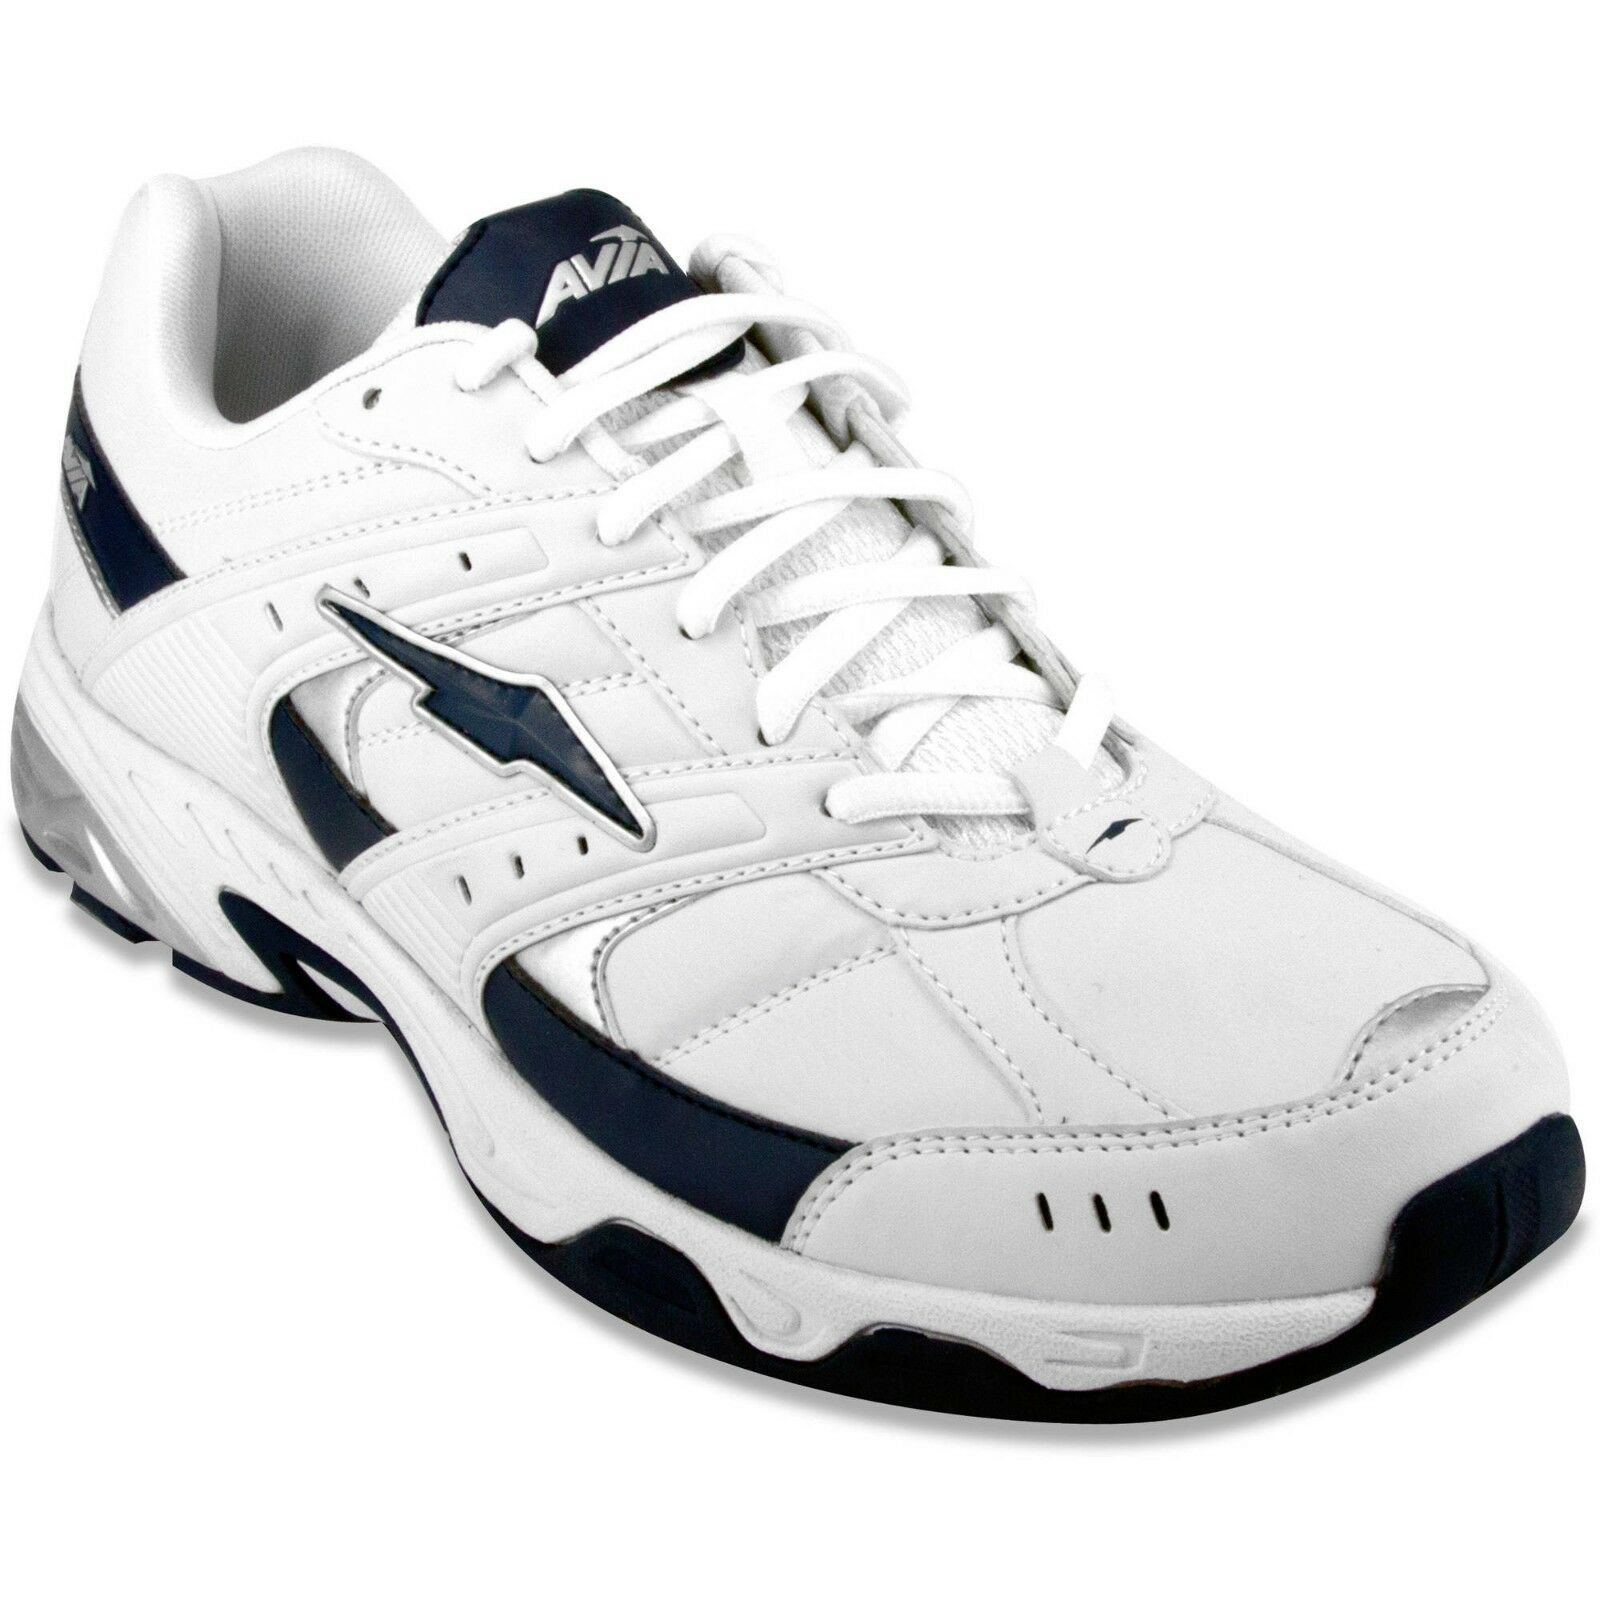 Brand New in Box Avia Men's Peter Athletic Sneakers US Mens Shoe Size-13E (WIDE)